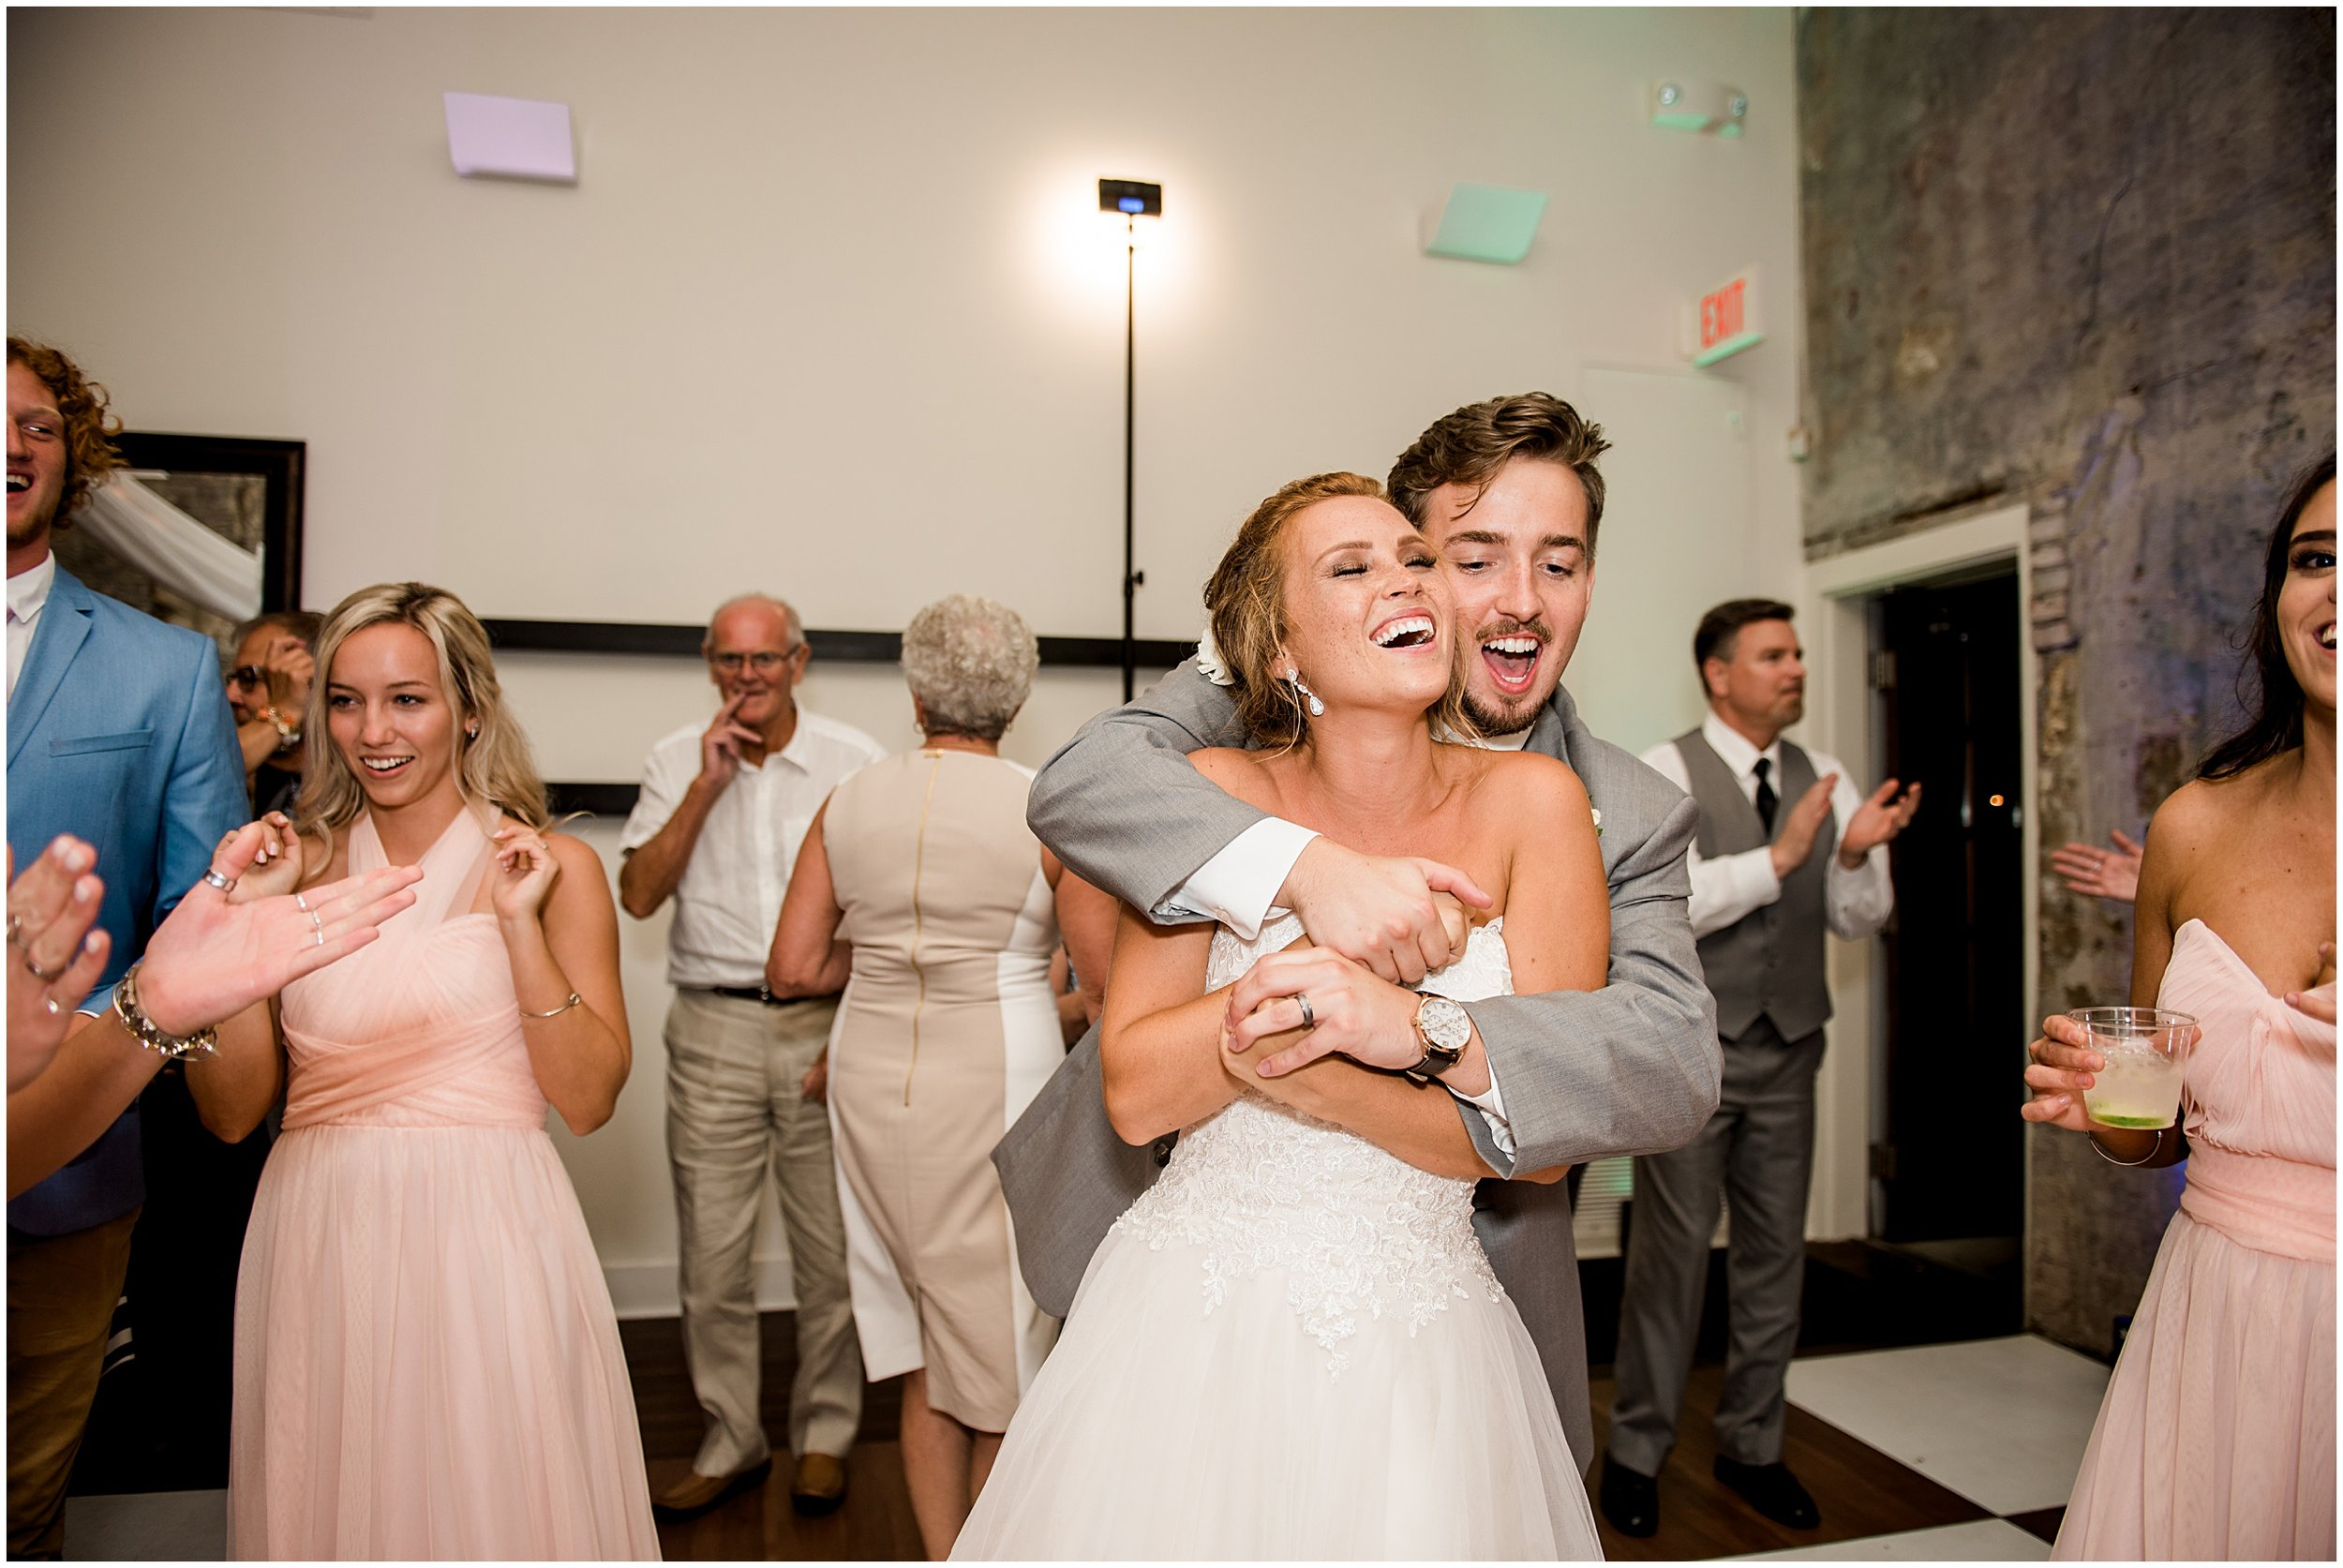 bestpensacolaweddingphotographer_1180.jpg